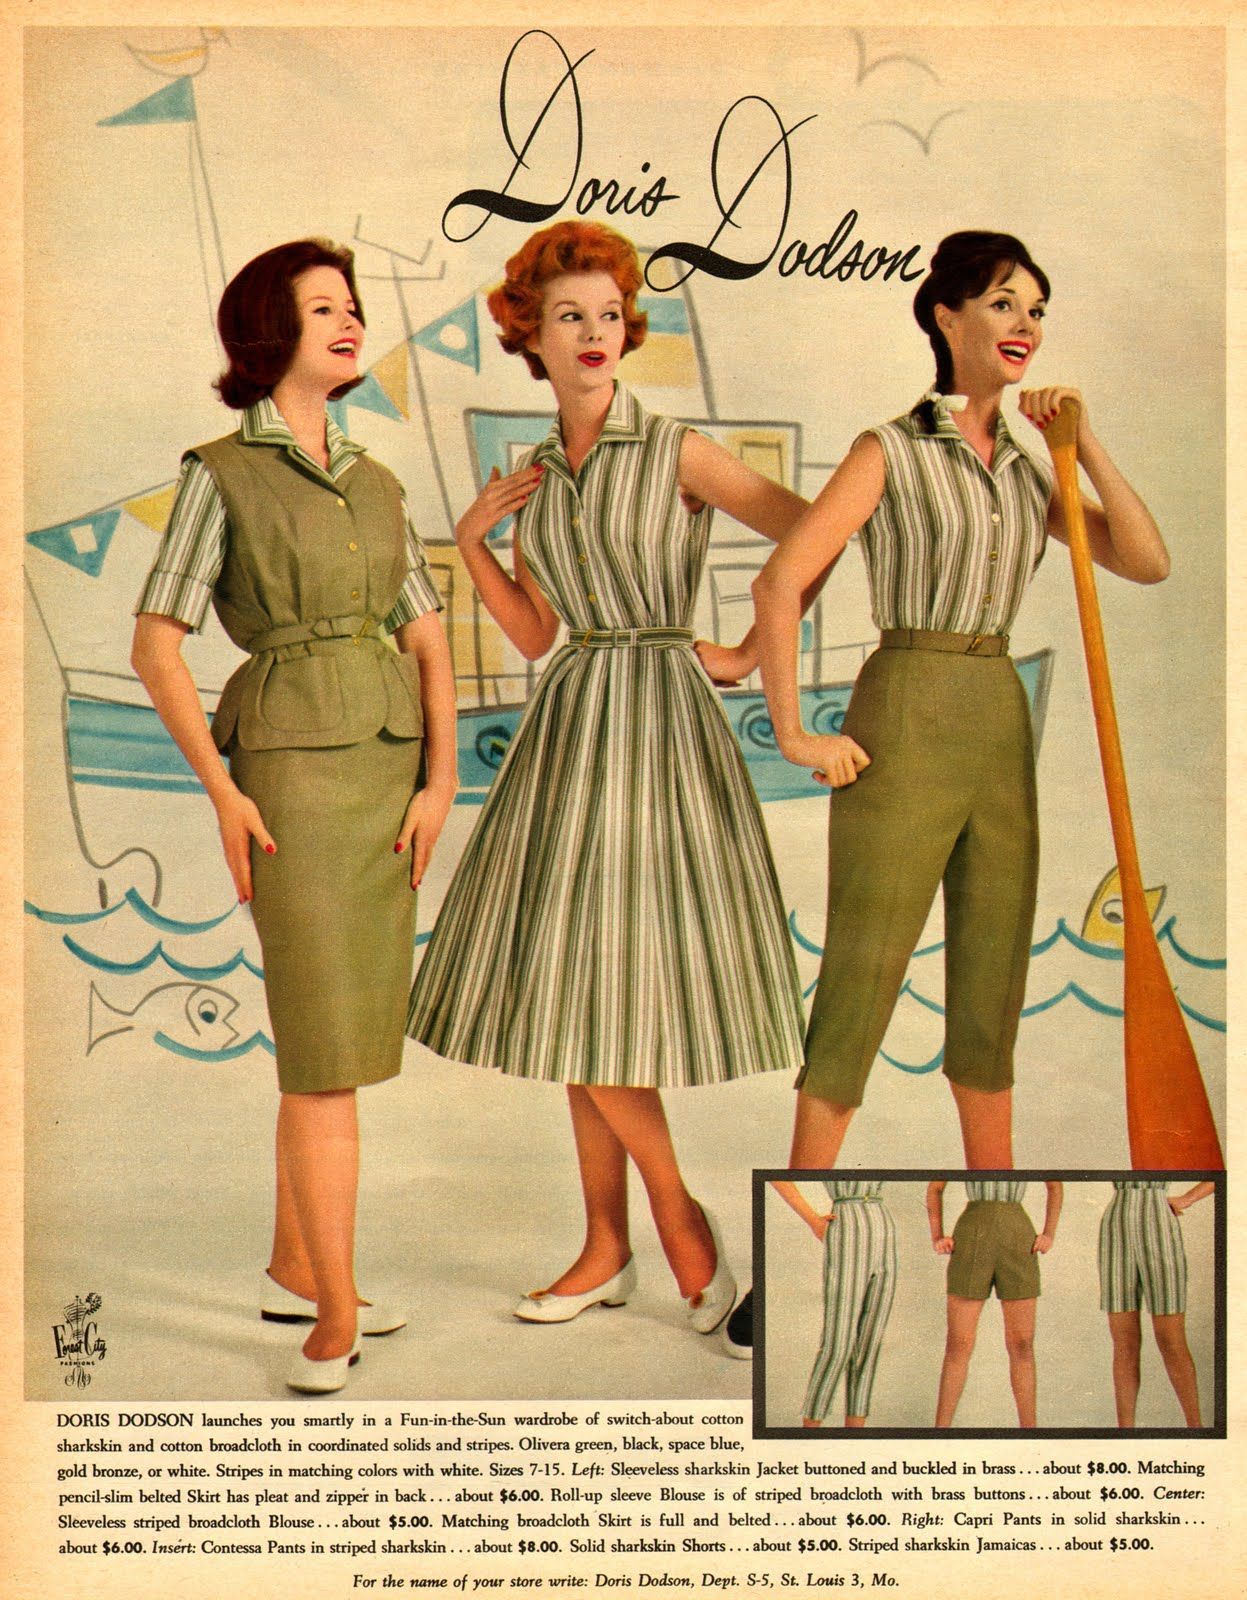 629abdc7df9edb057948bc382a81cf6c 1960's fashion advertisements in 1960 from \